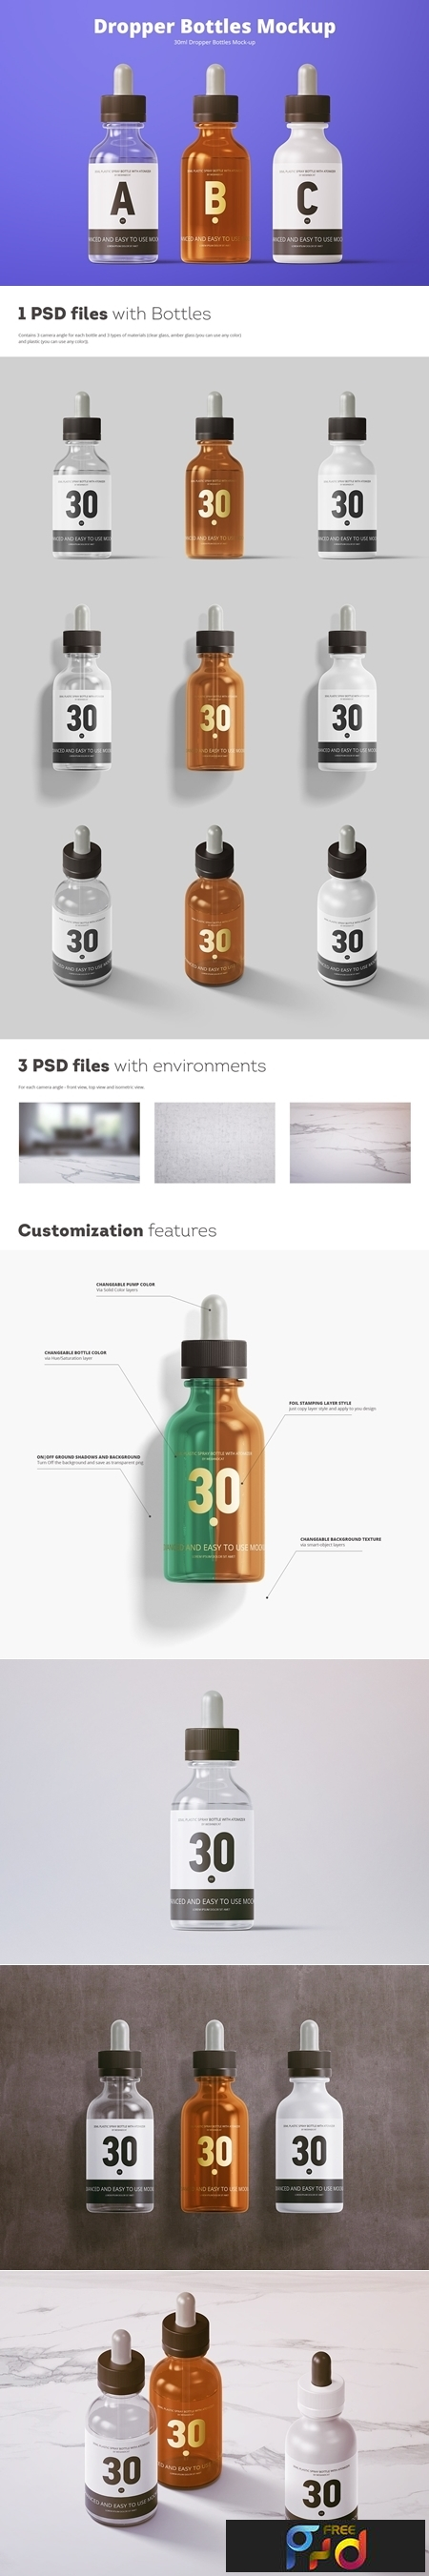 30ml Dropper Bottles Mockup 3734493 1